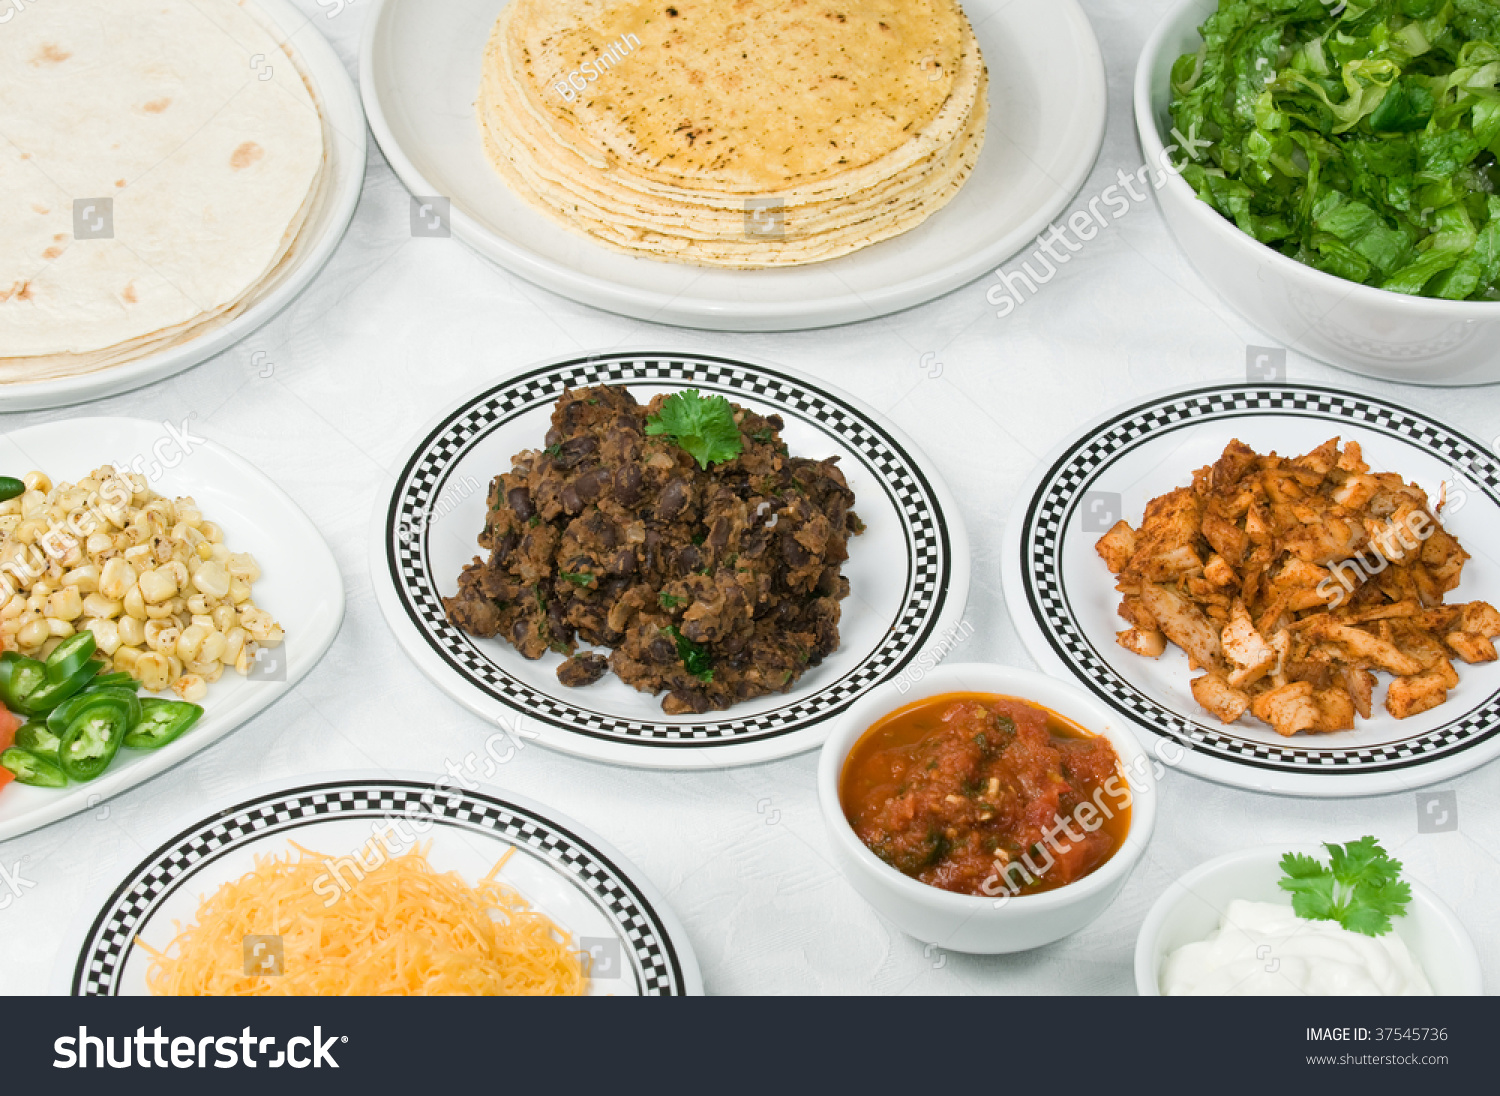 Dinner table with mexican food - Save To A Lightbox